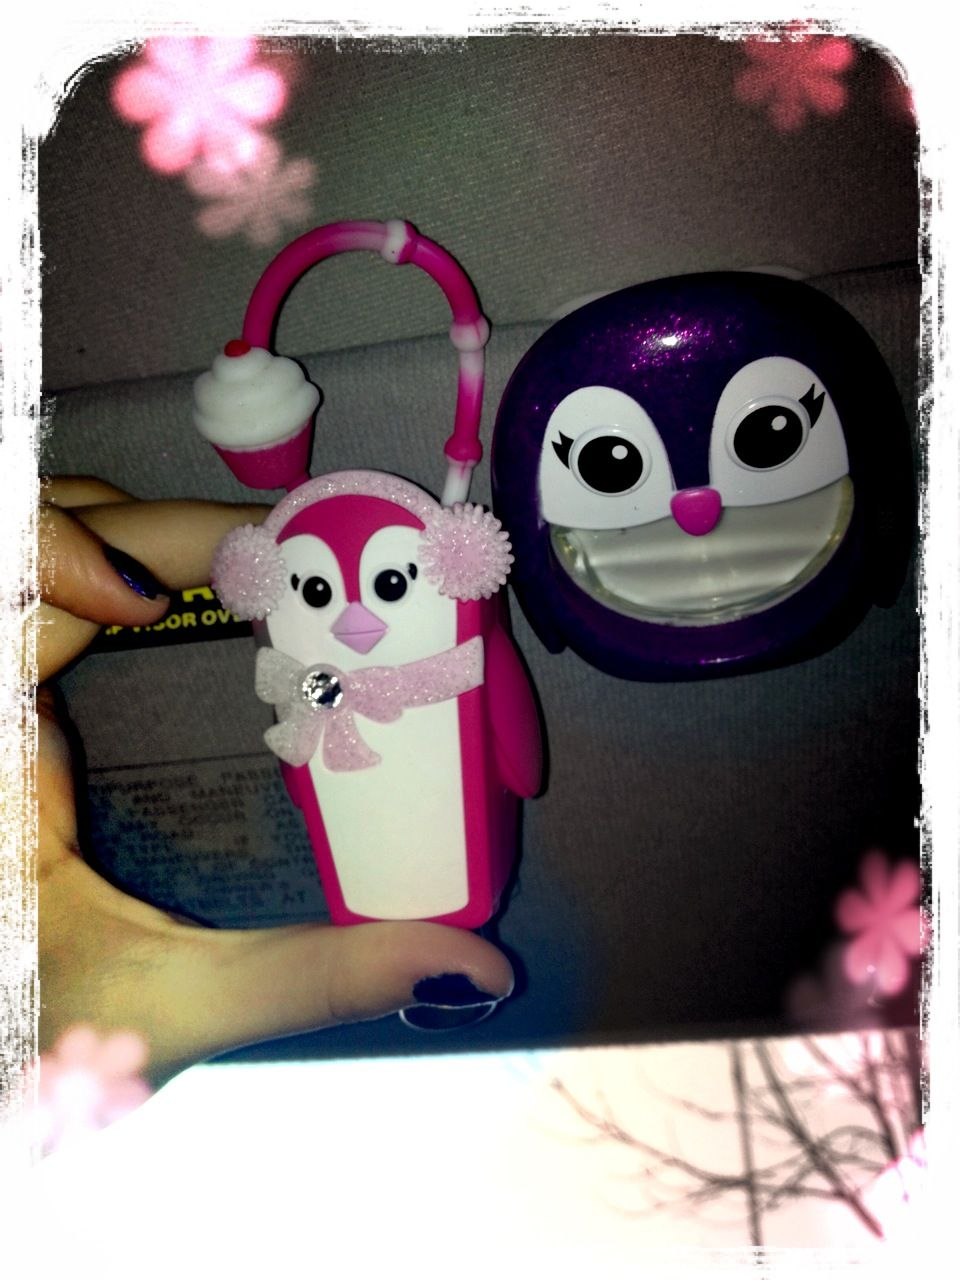 Penguin Hand Sanitizer Holder And Car Freshener Hand Sanitizer